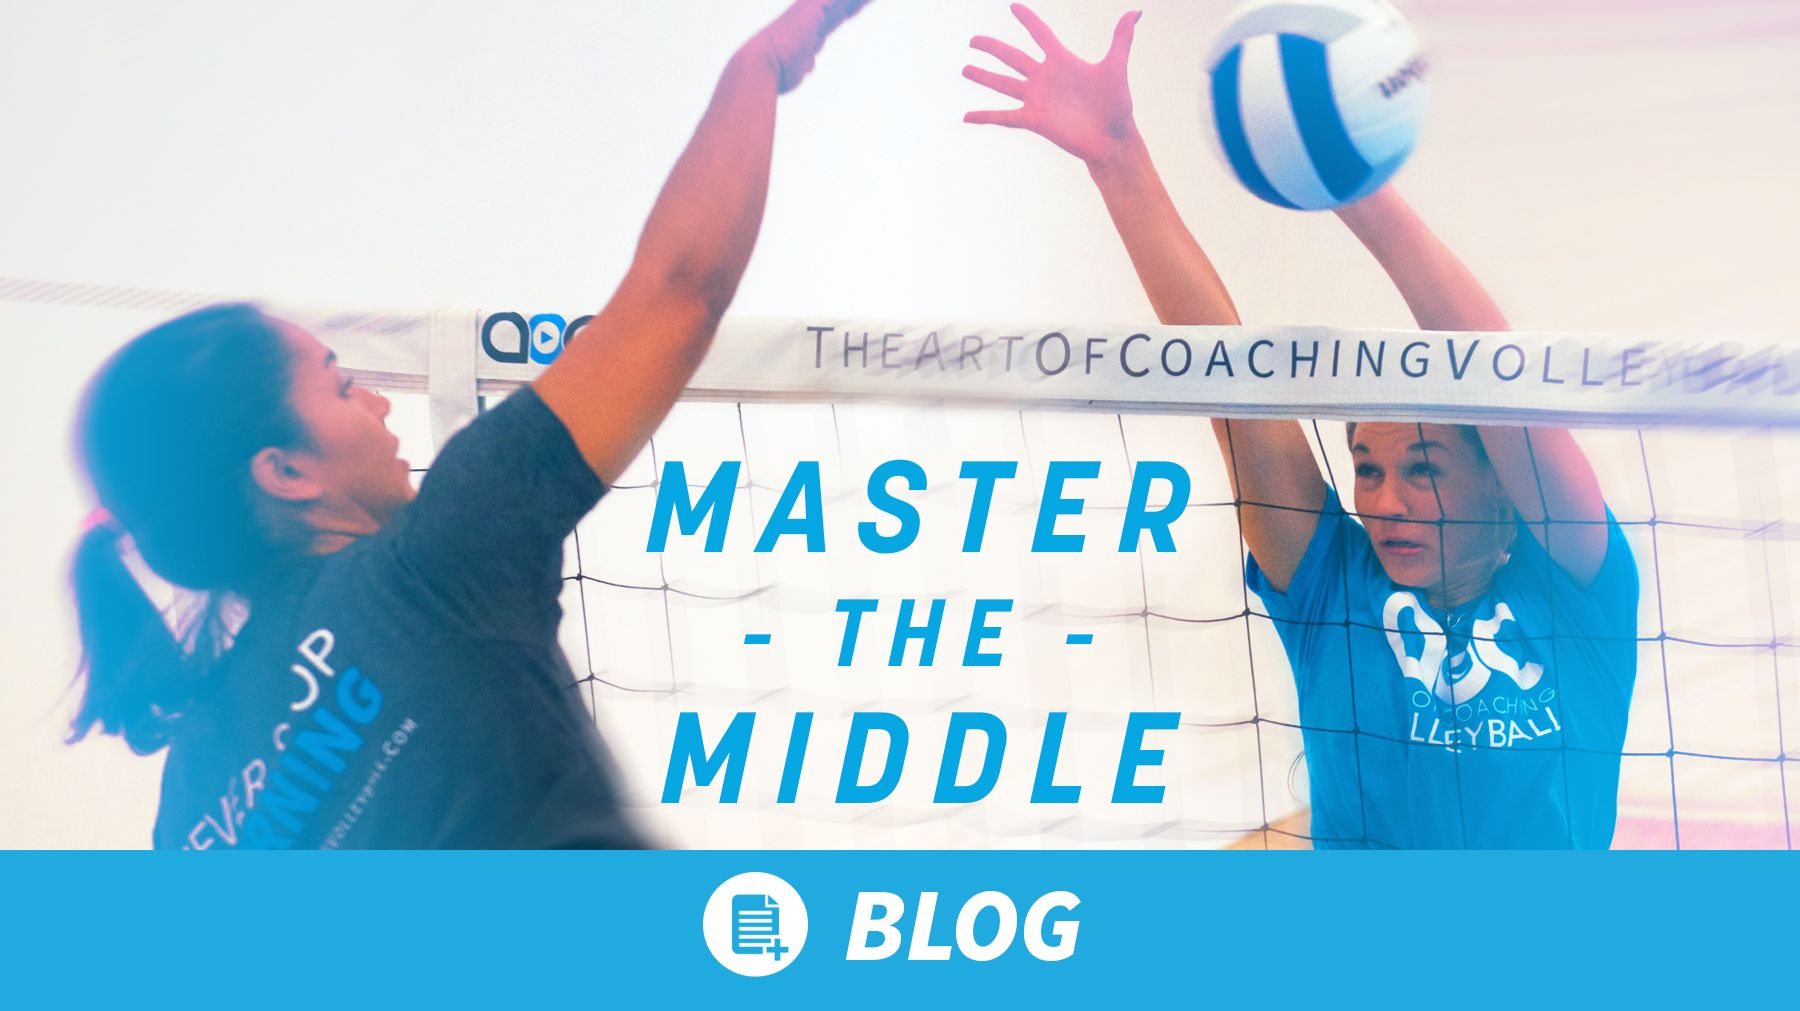 3 Tips To Master The Middle The Art Of Coaching Volleyball Coaching Volleyball Volleyball Tips Volleyball Training